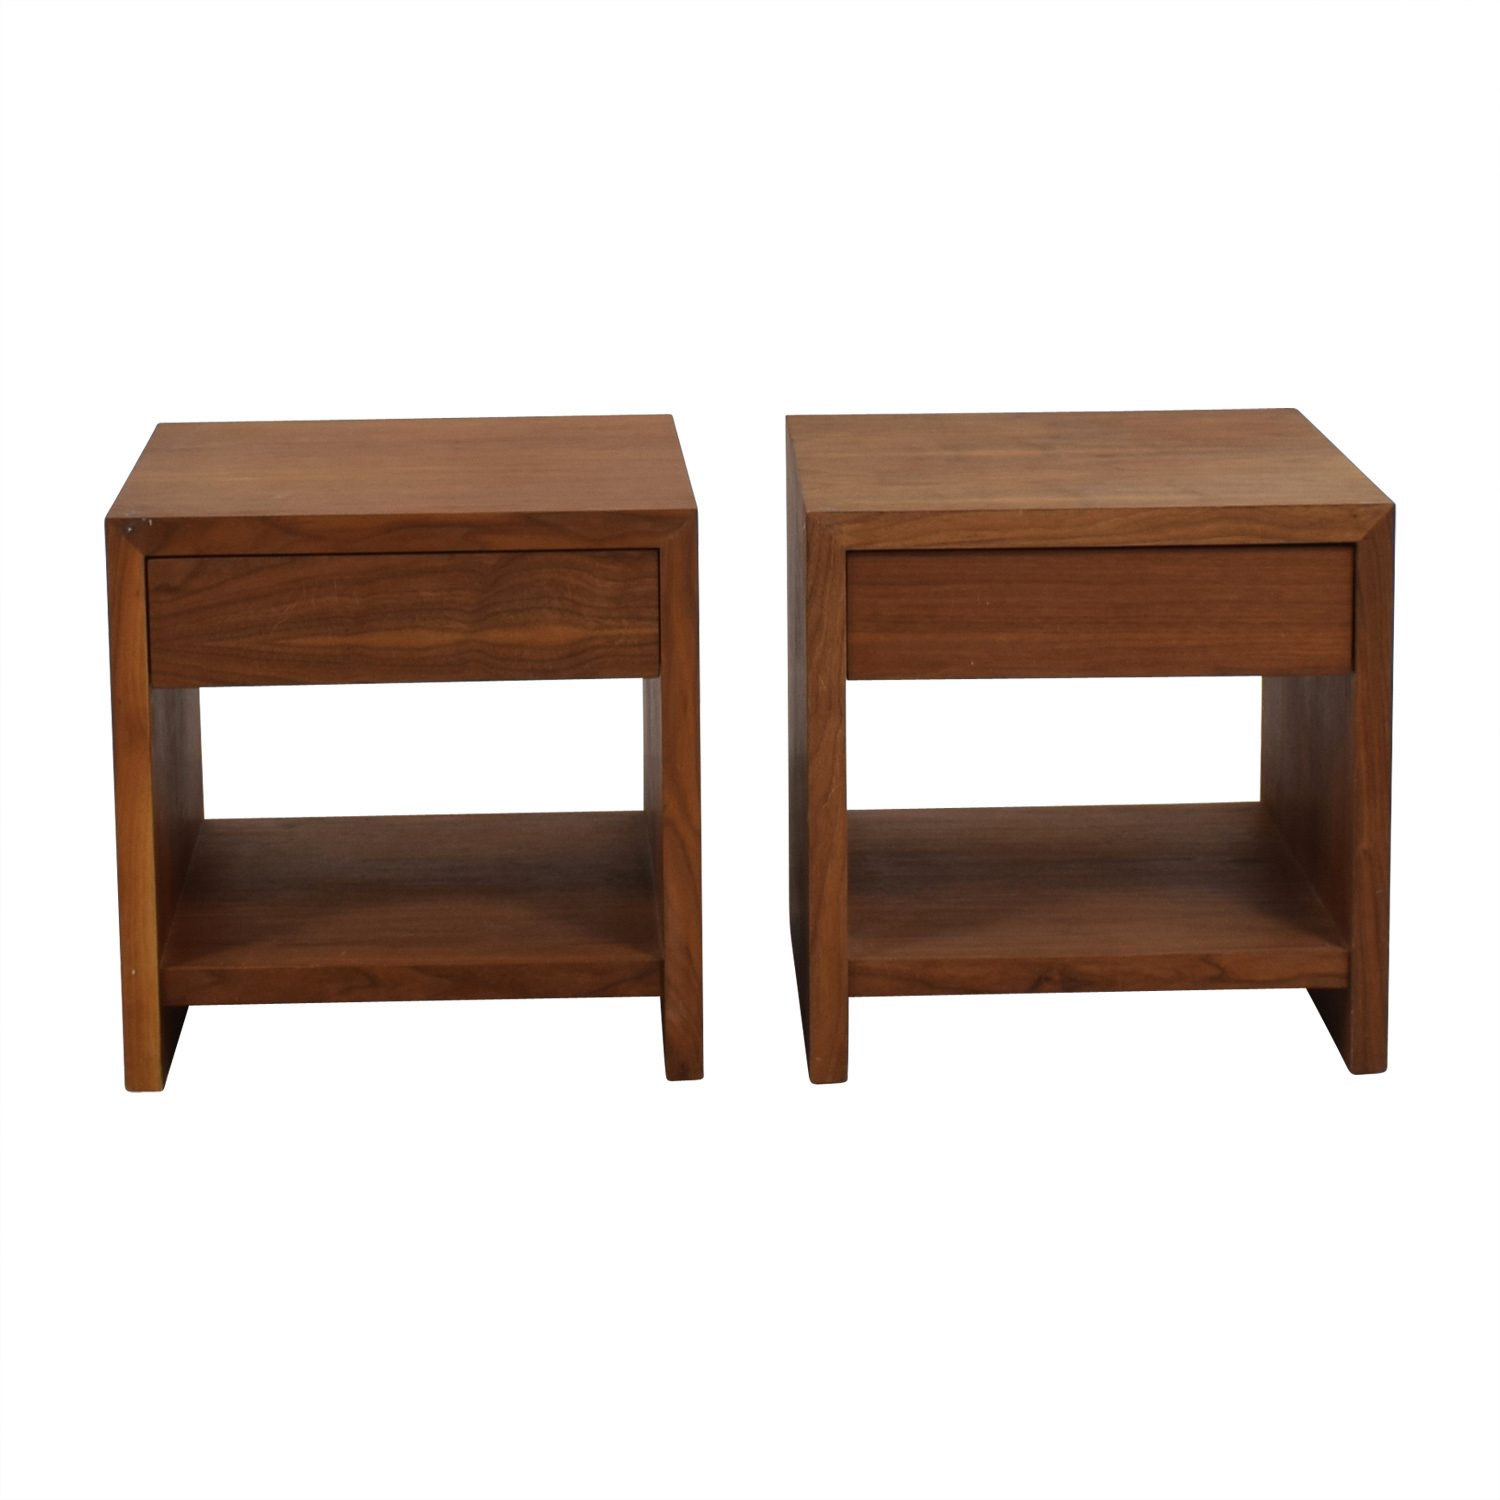 Desiron Desiron Grove Single Drawer Side Tables for sale